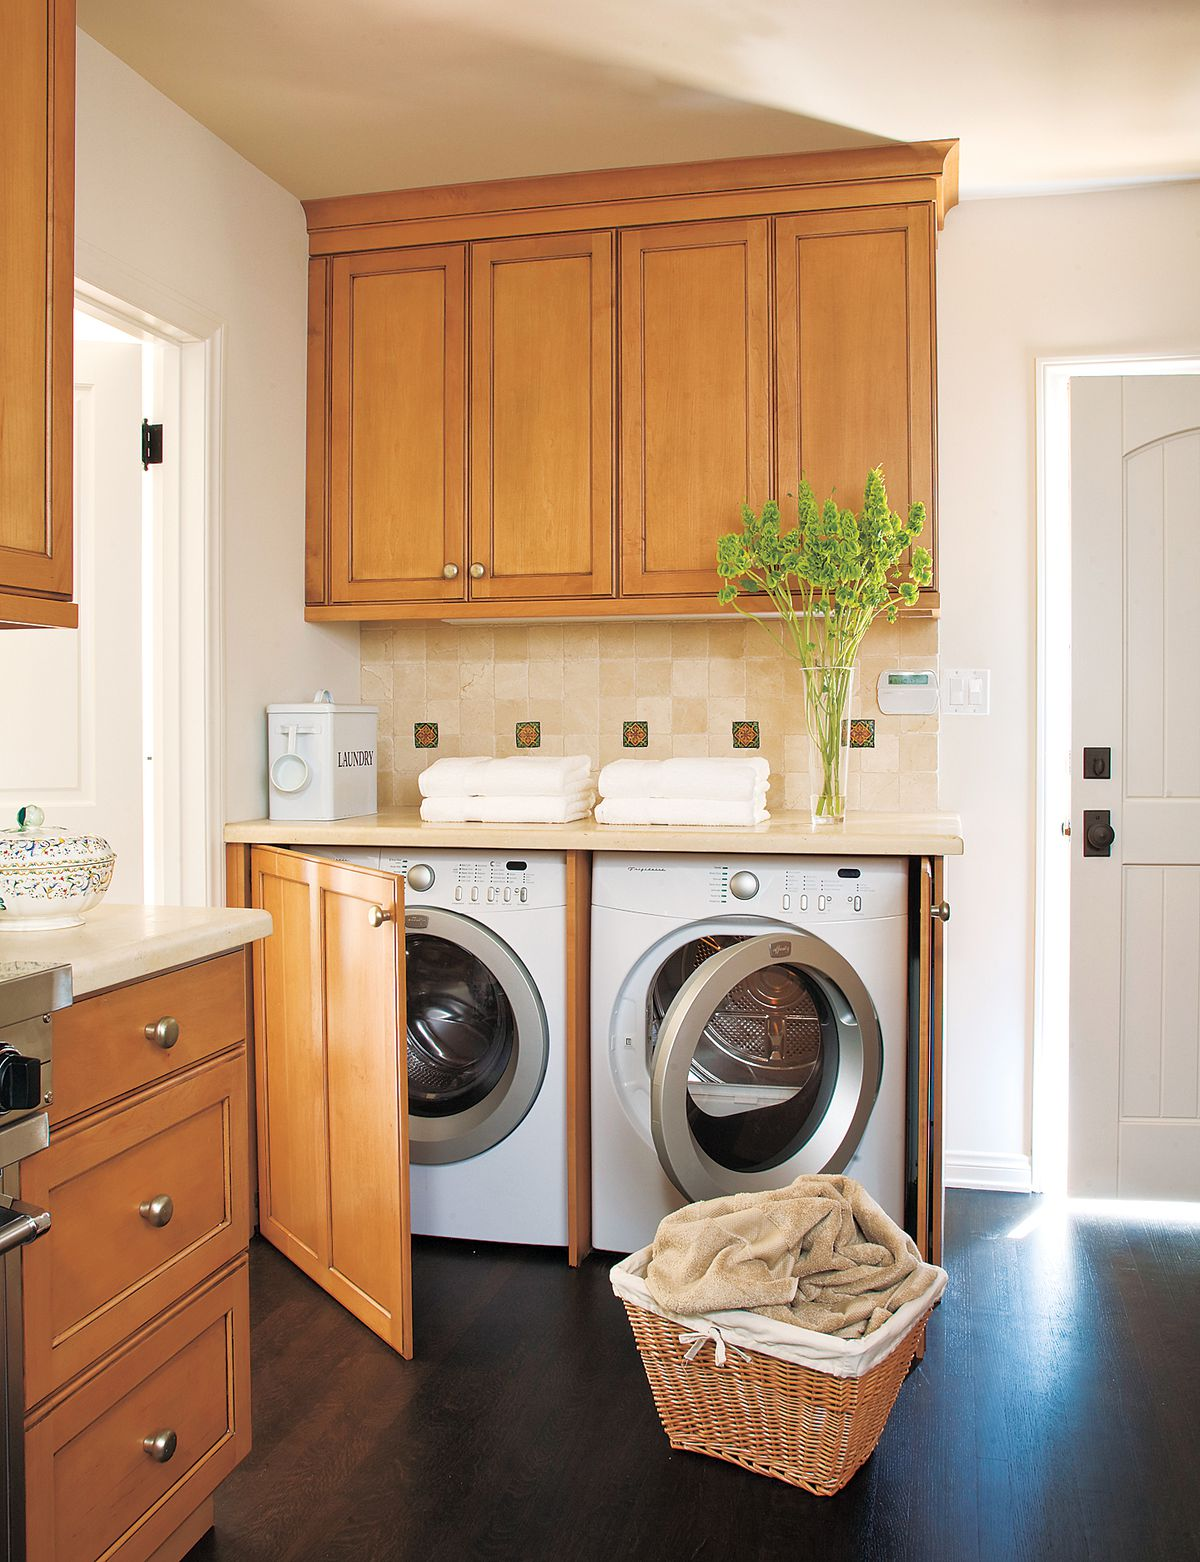 17 Ideas for a Fully Loaded Laundry Room - This Old House